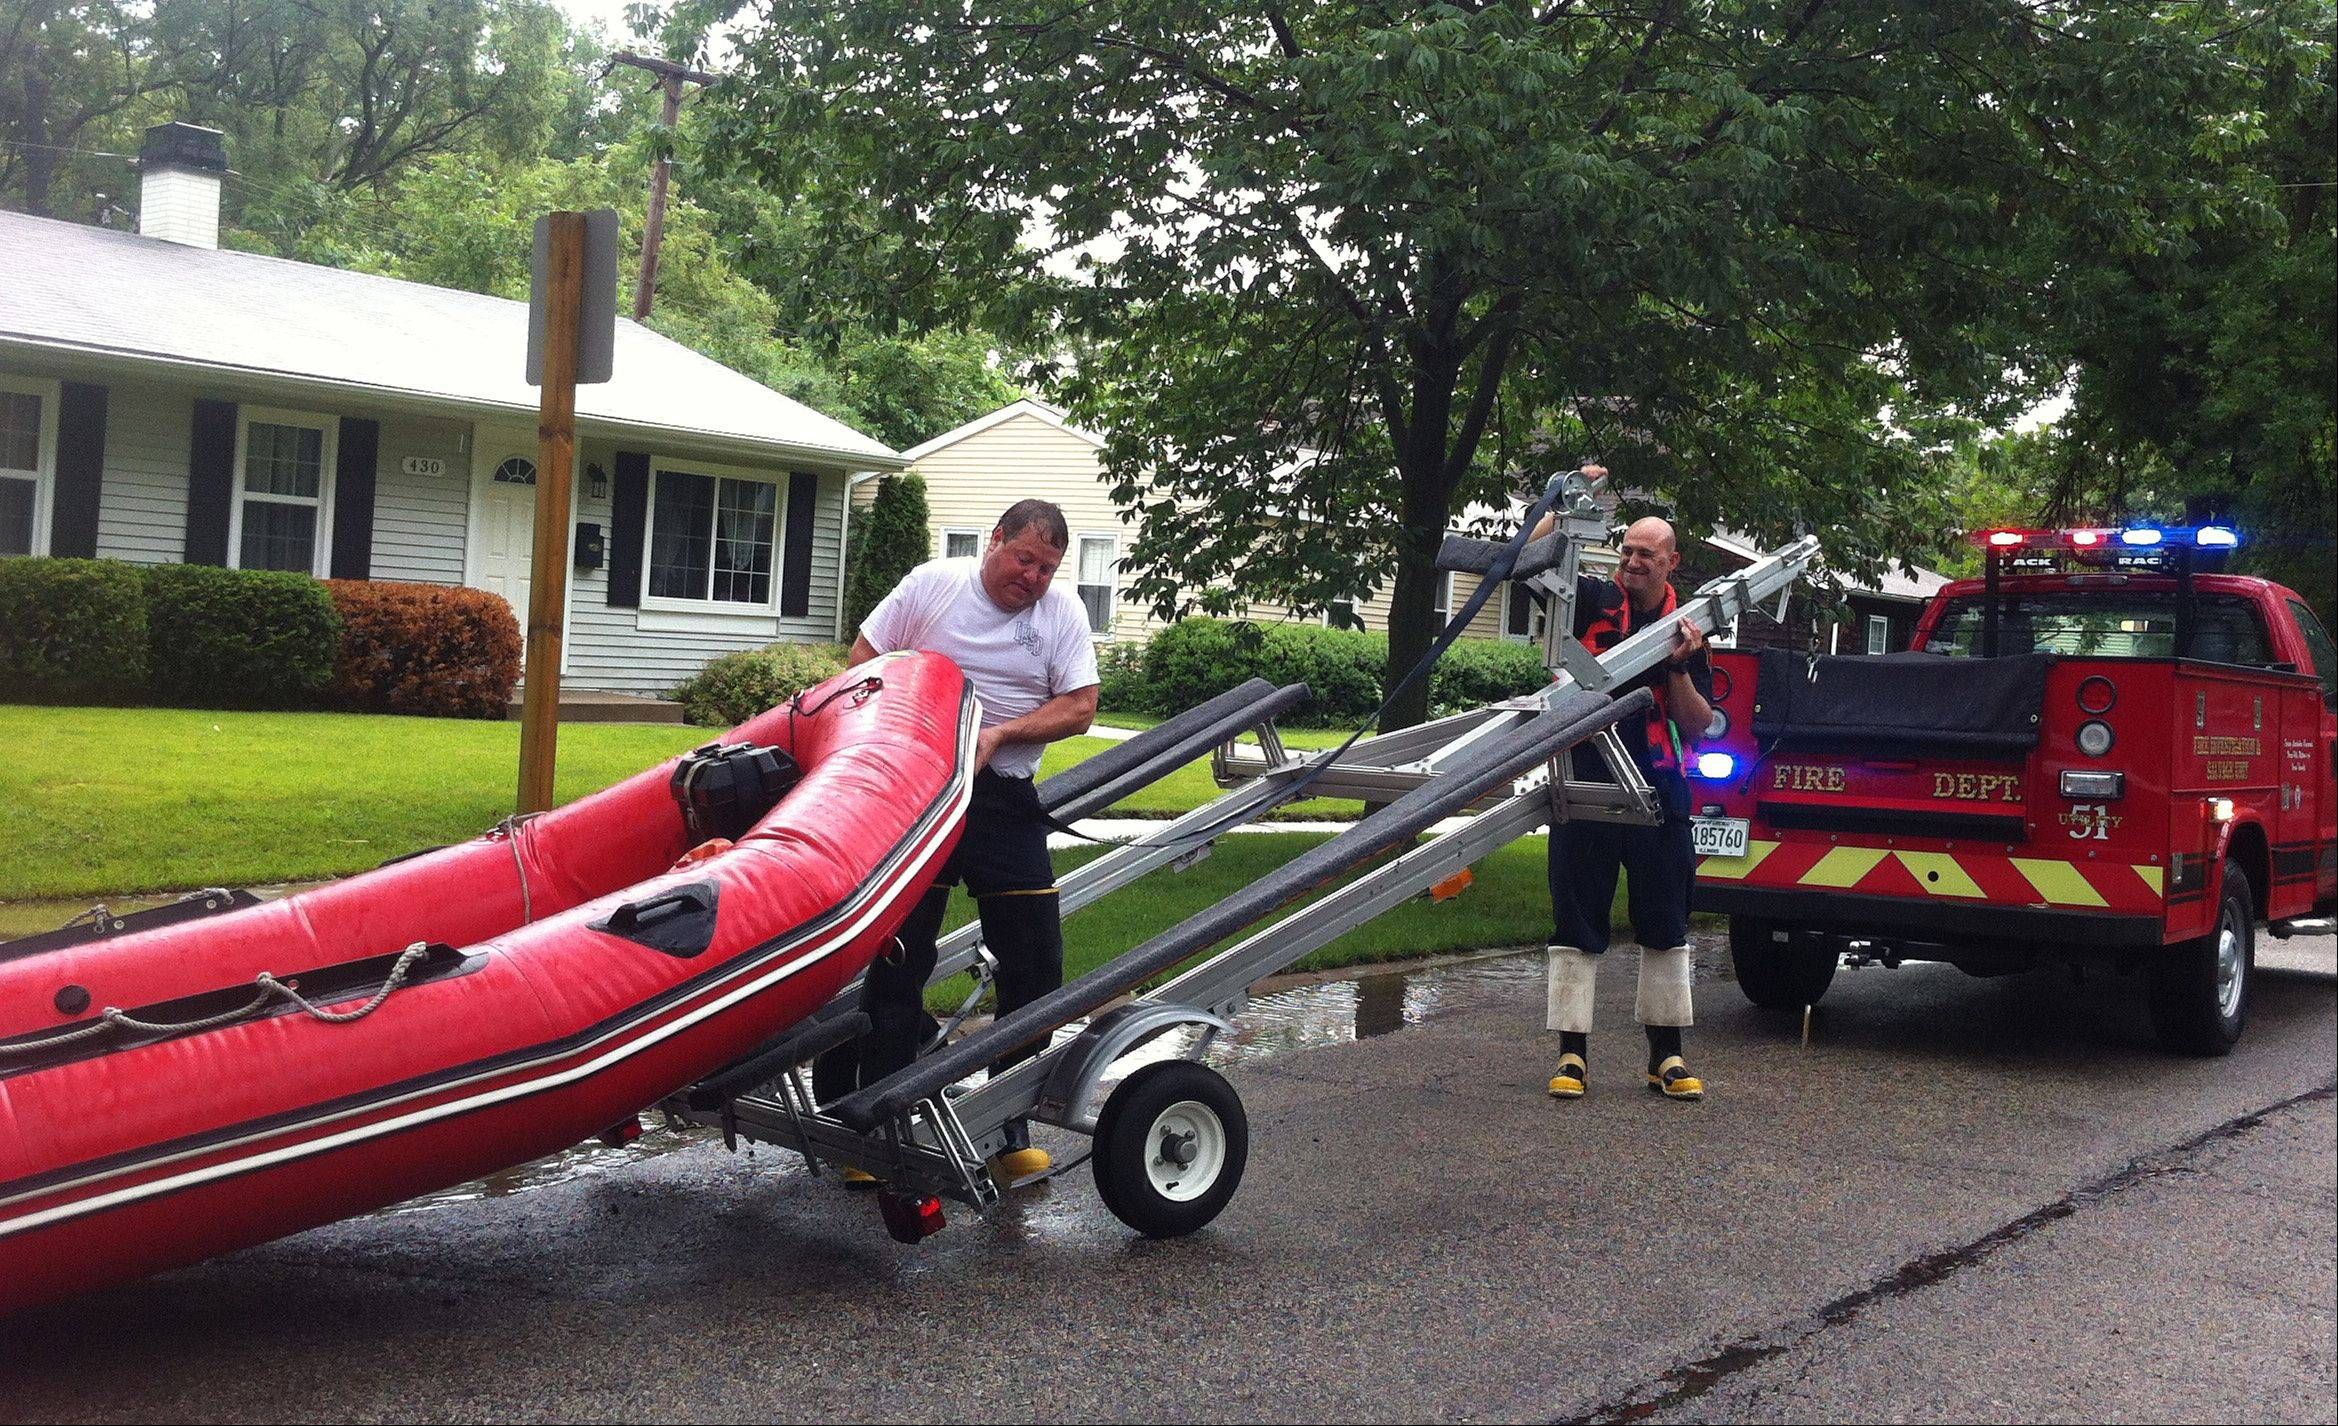 Buffalo Grove Fire Department personnel load a rescue boat back onto a trailer Wednesday after helping to evacuate some nearby residents as floodwaters rose in their homes.